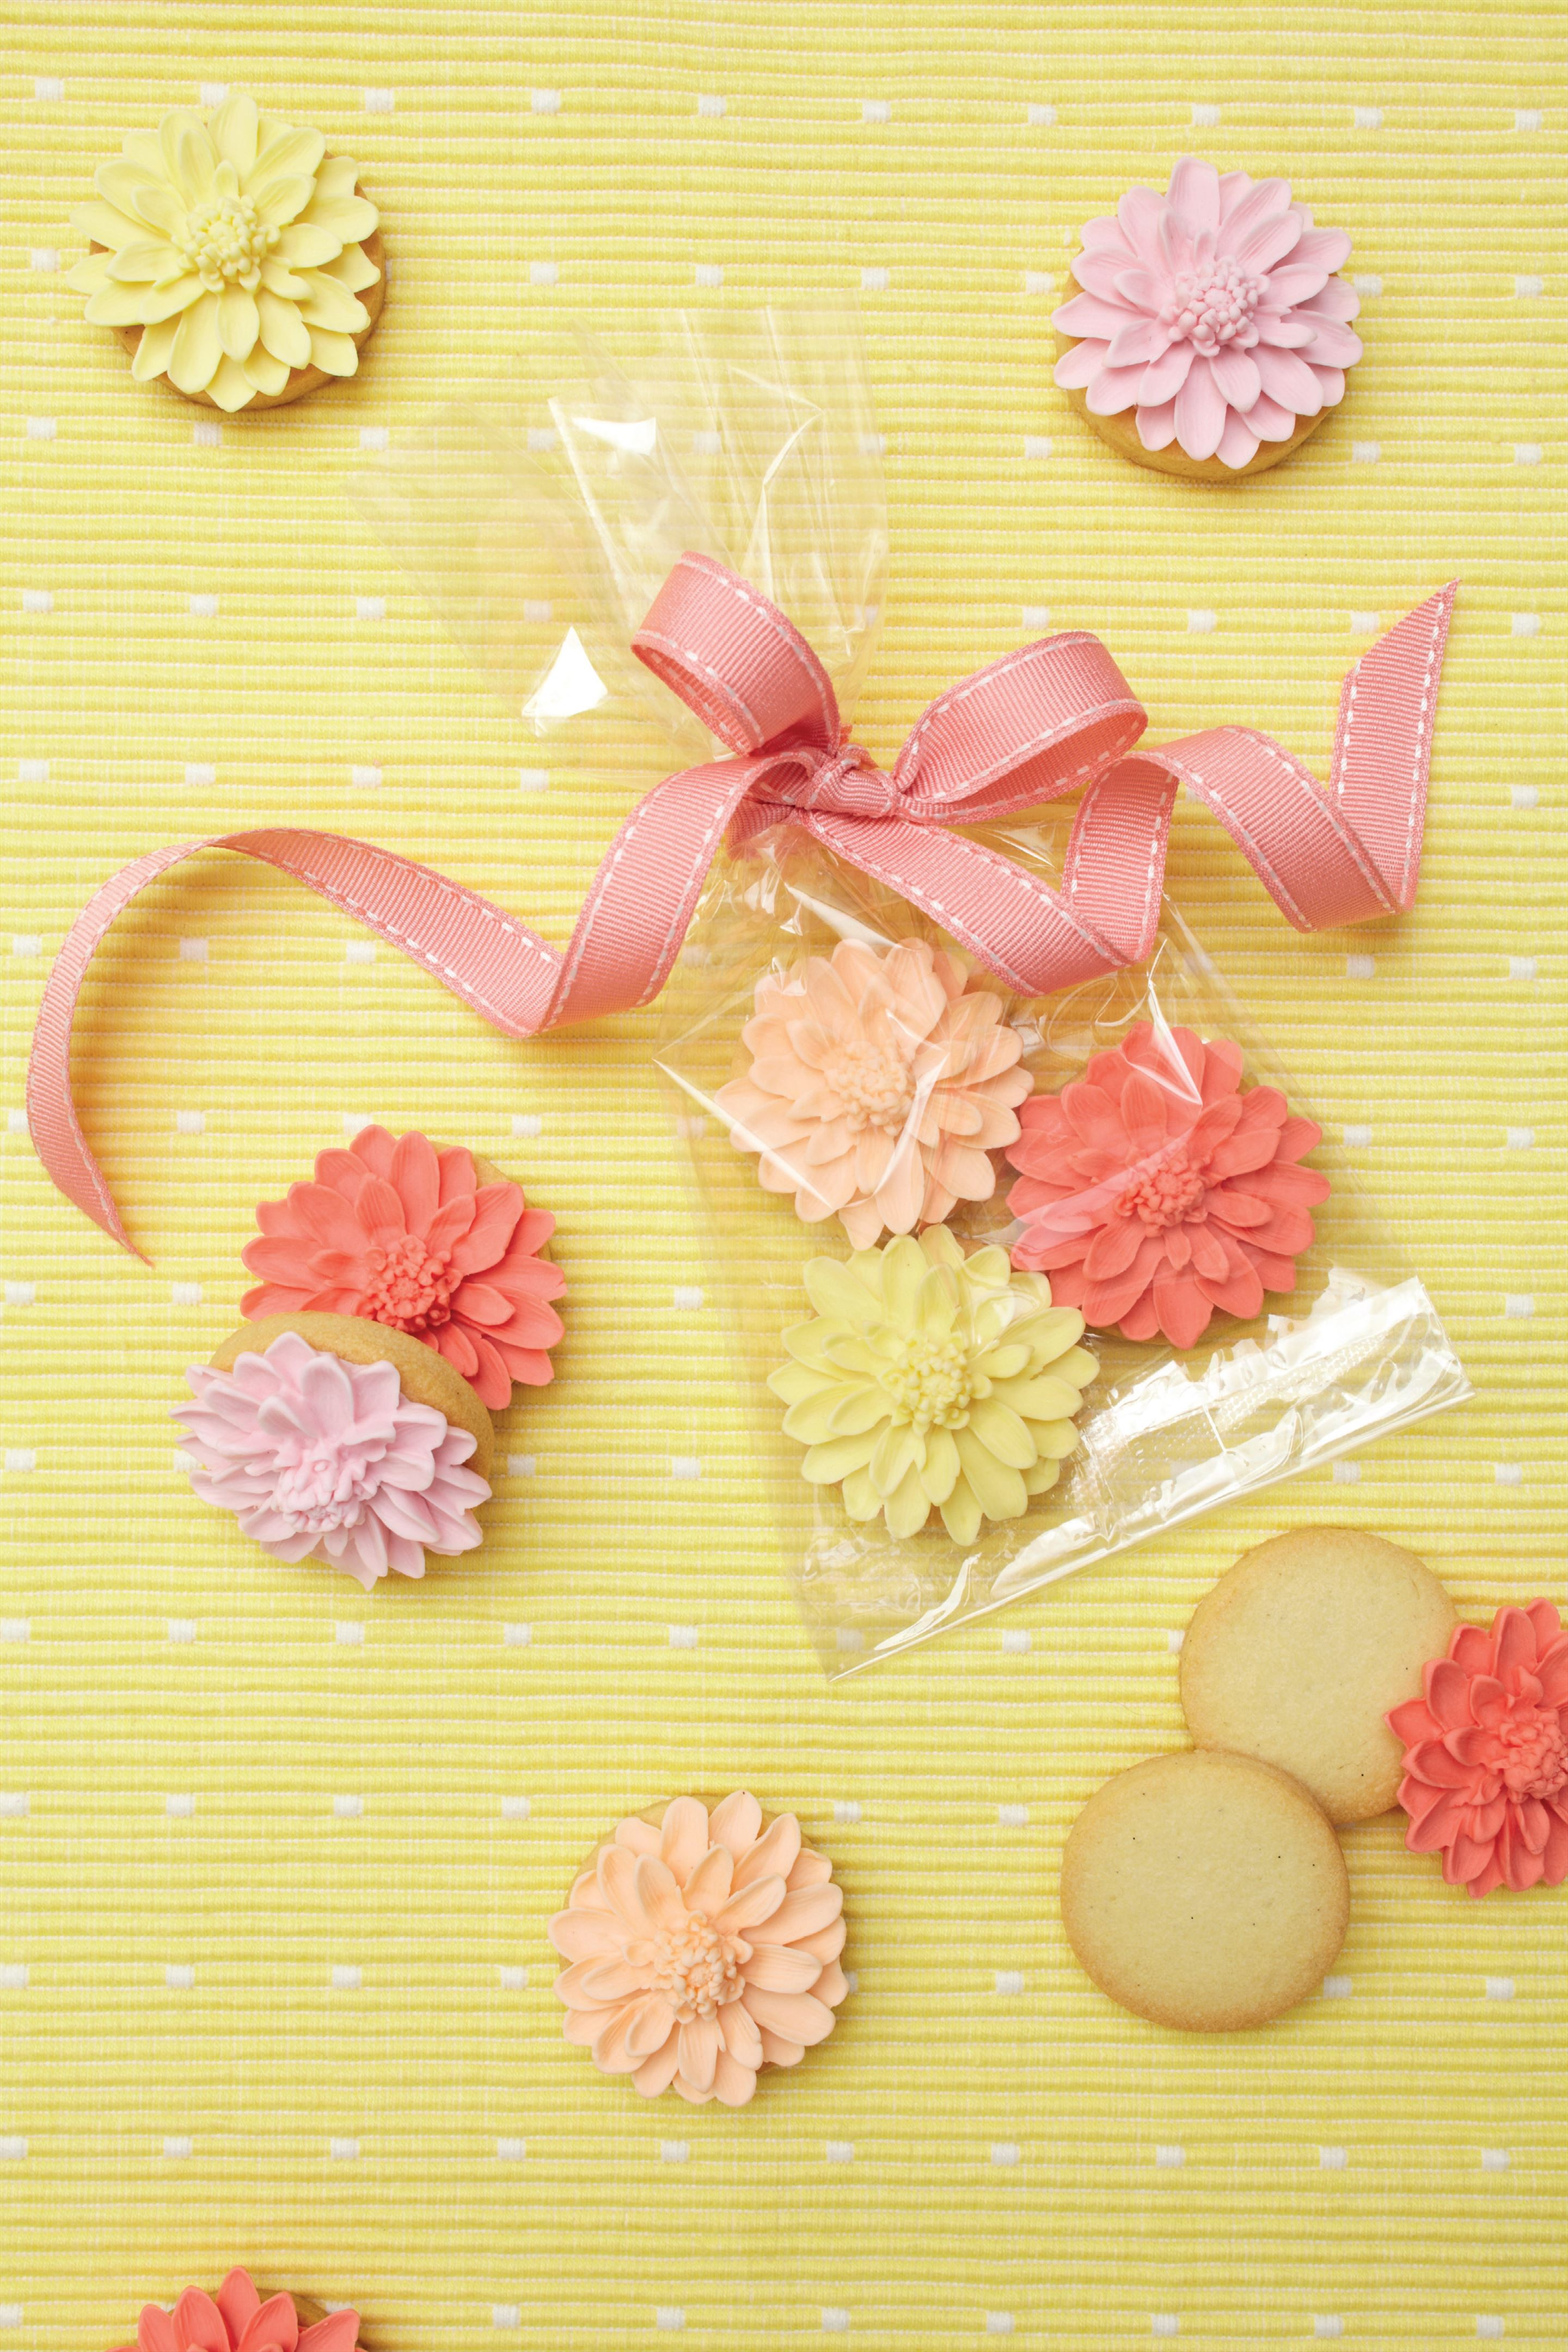 Blossom biscuits